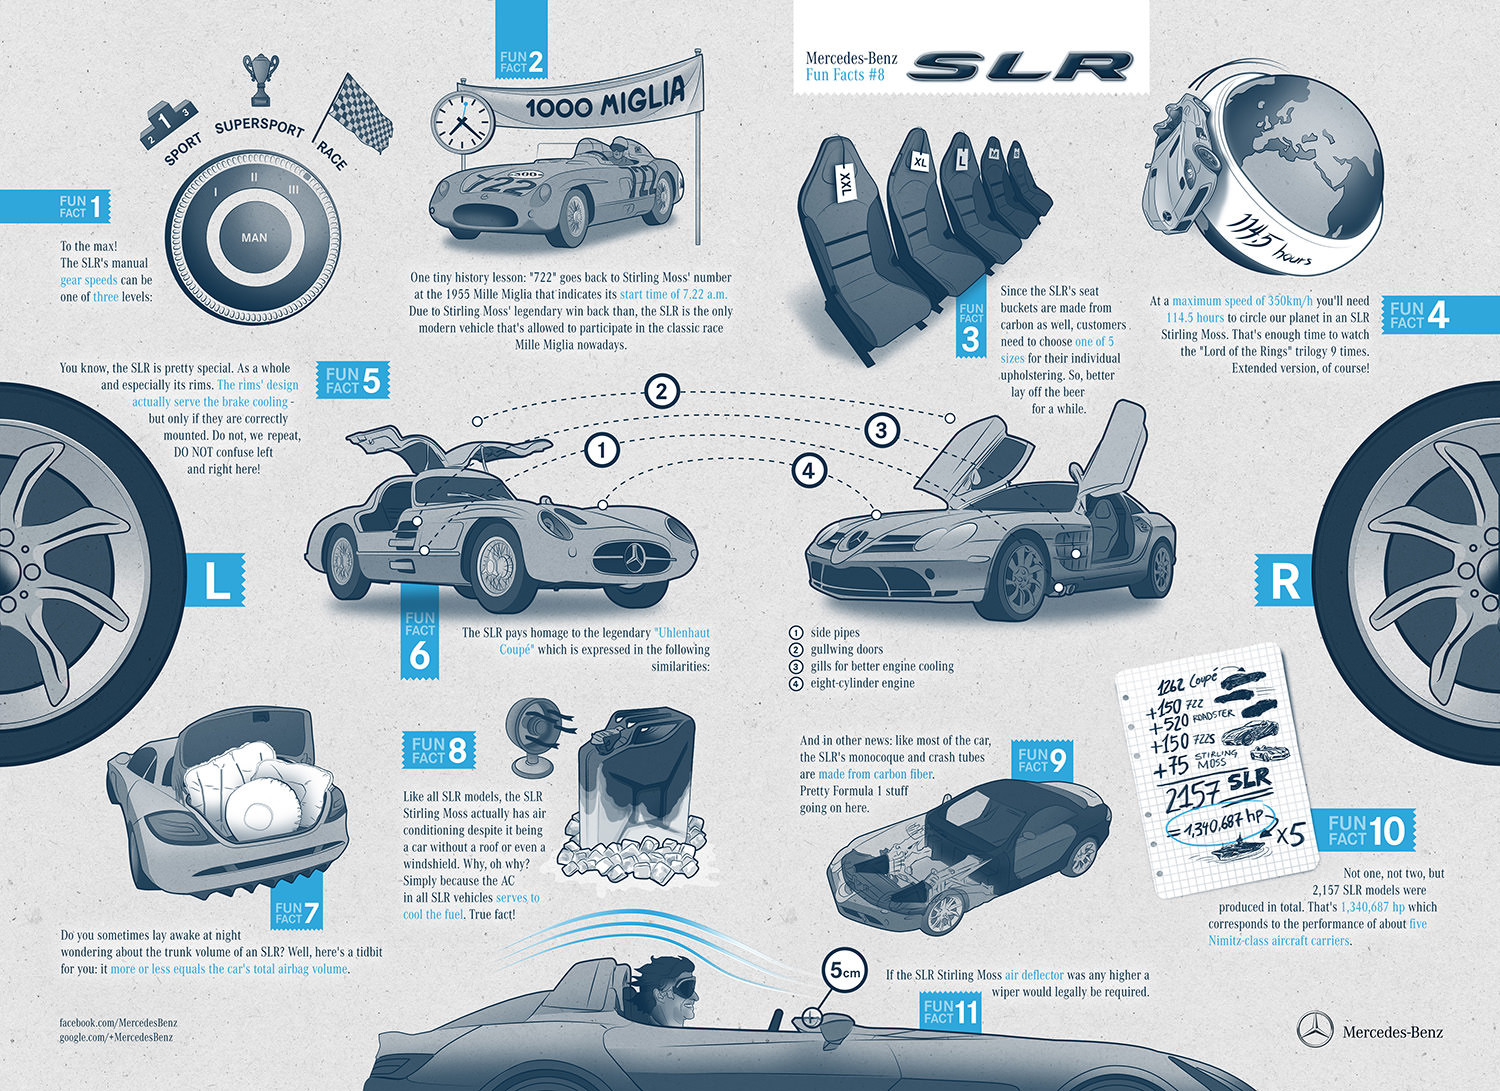 Mercedes-Benz SLR Fun Facts! Infographic